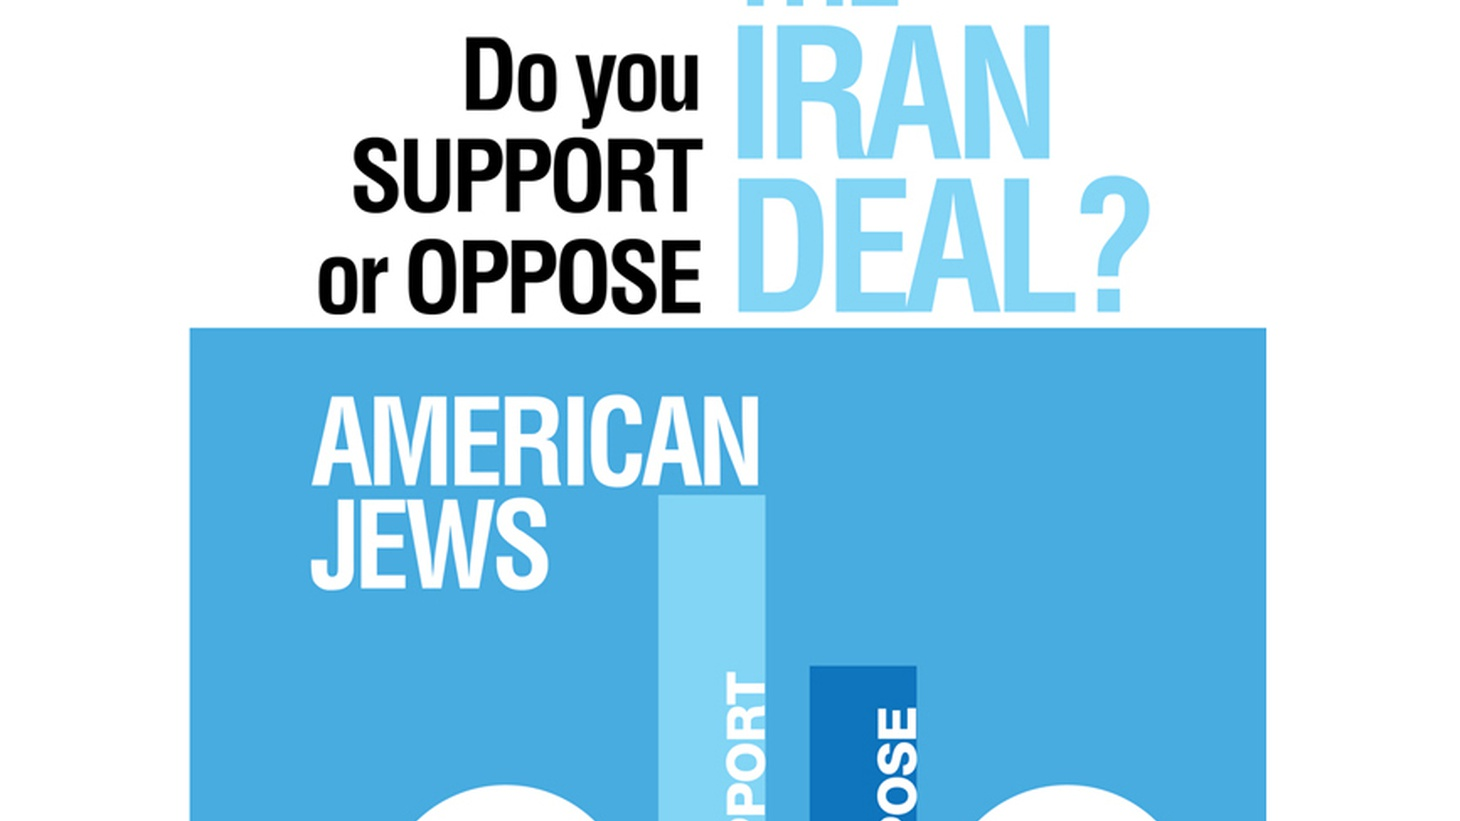 """Prime Minister Netanyahu calls Iran an """"existential threat"""" to Israel, and he's lobbying Congress to reject President Obama's nuclear deal. But by a wide margin, American Jews support the Iran nuclear deal…and they want Congress to approve it even more than Americans generally."""